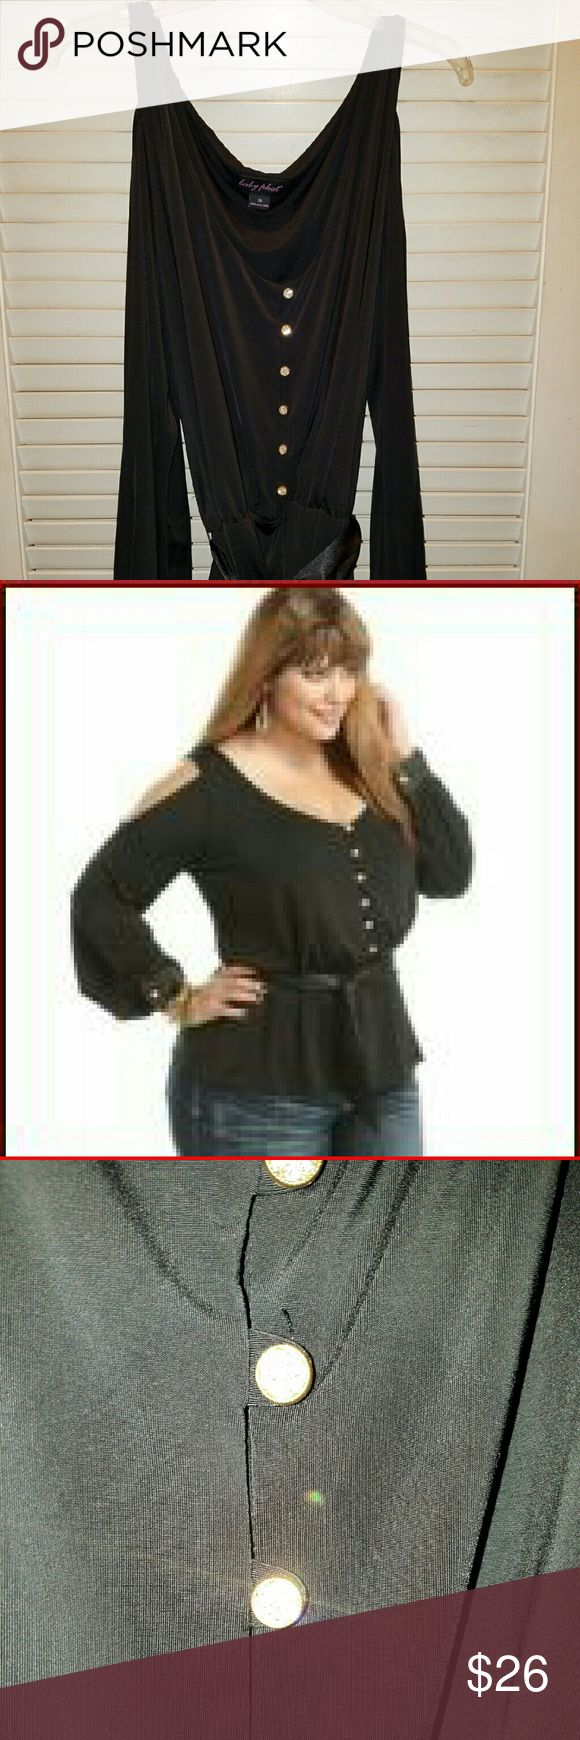 Baby Phat Glam Studio Black Cold Shoulder Top 3x Baby Phat Glam Studio Black Matte Jersey Cold Shoulder Dress Top 3x Plus Size Rhinestone buttons and satin sash Ruched waist- really cute Baby Phat Tops Blouses